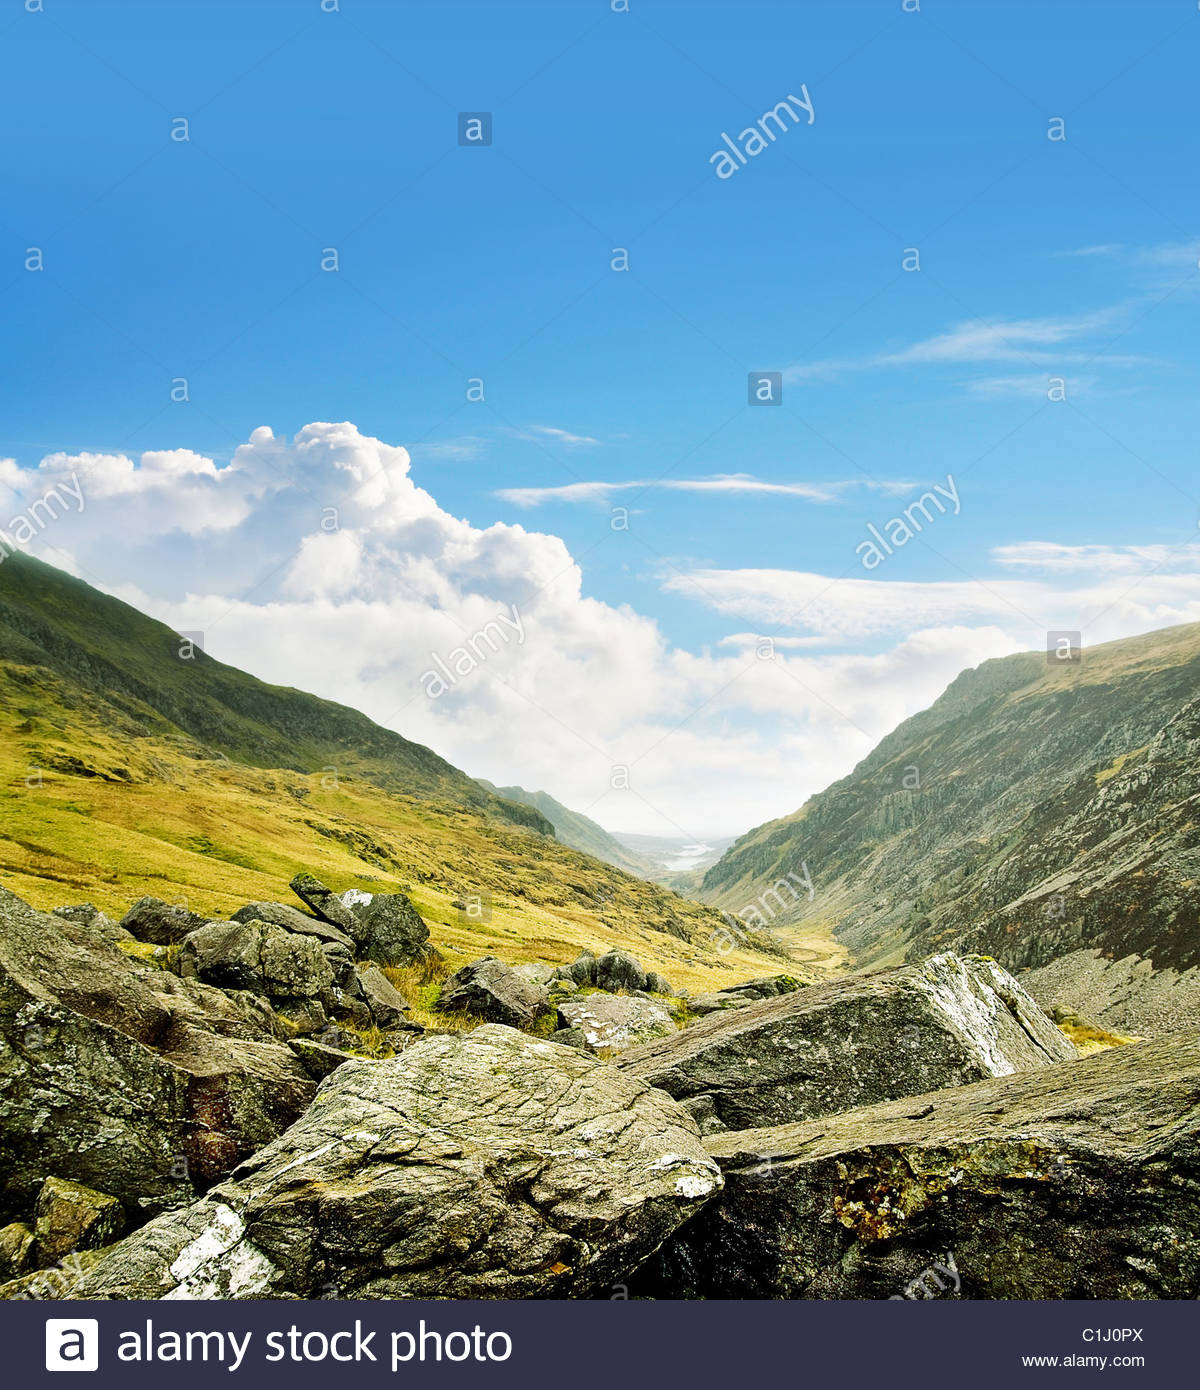 Sunny mountains - Stock Image